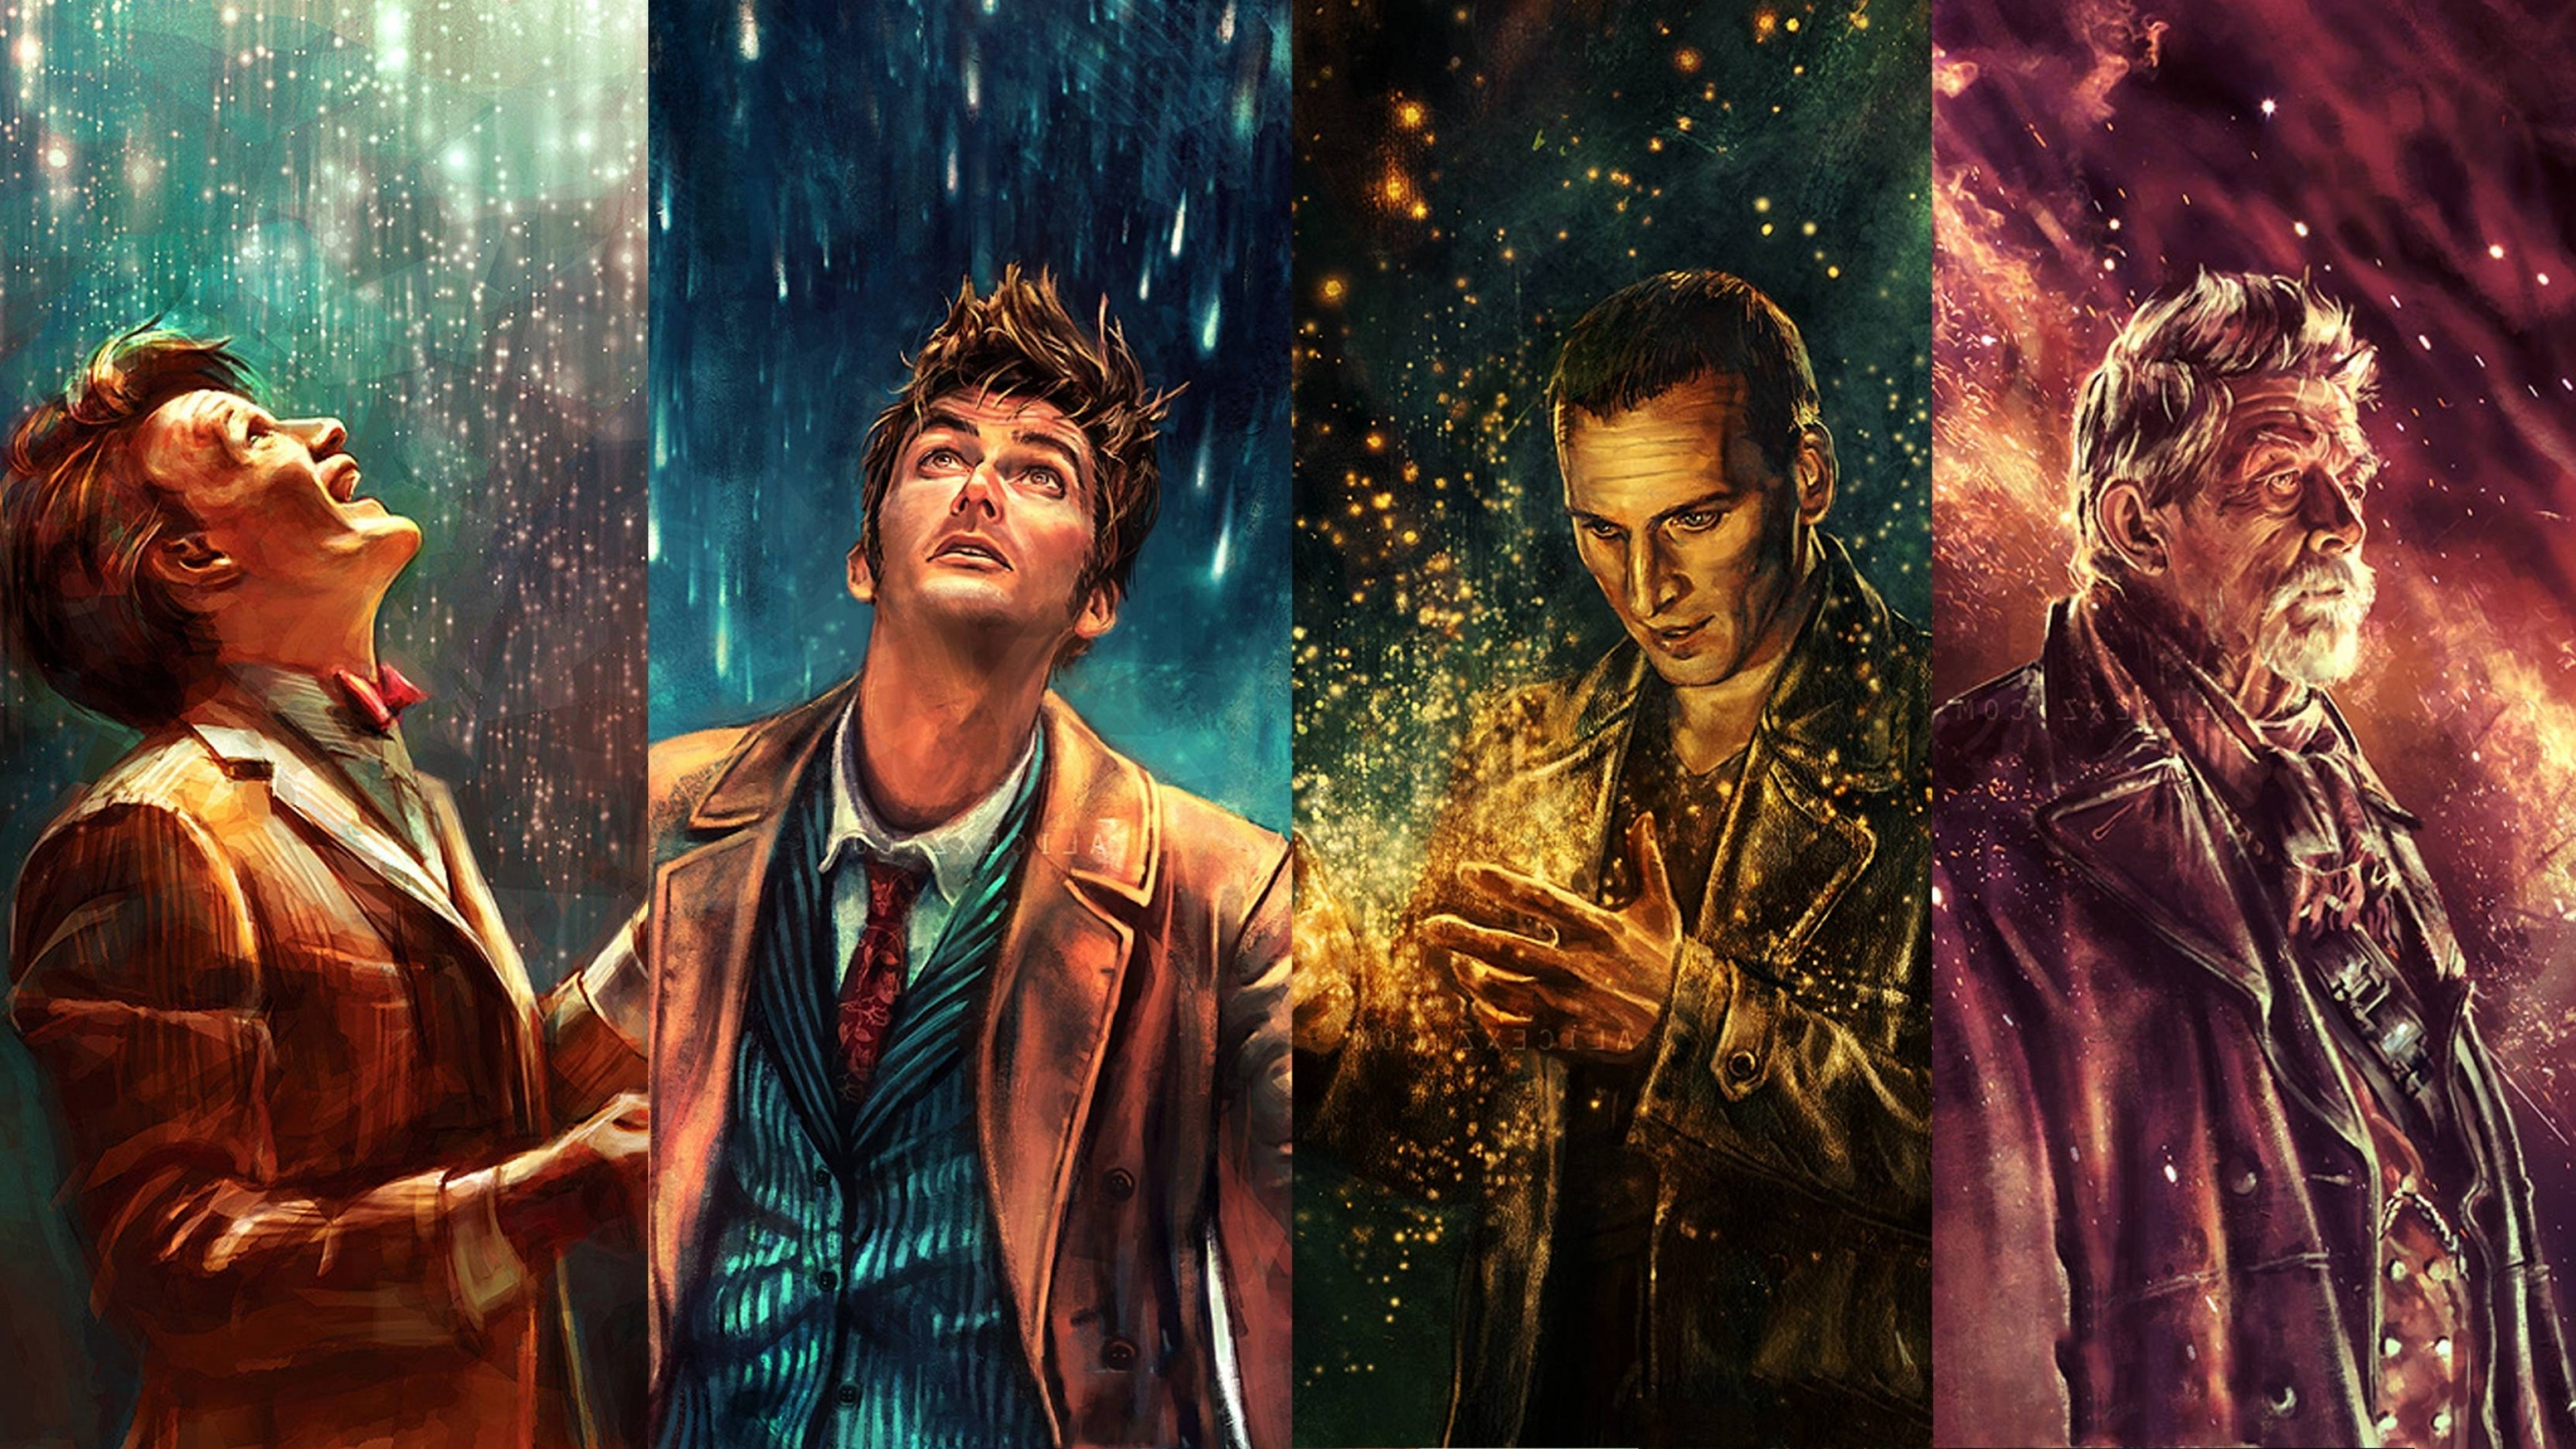 Tardis Wallpaper Hd Doctor Who The Doctor War Doctor Ninth Doctor Tenth